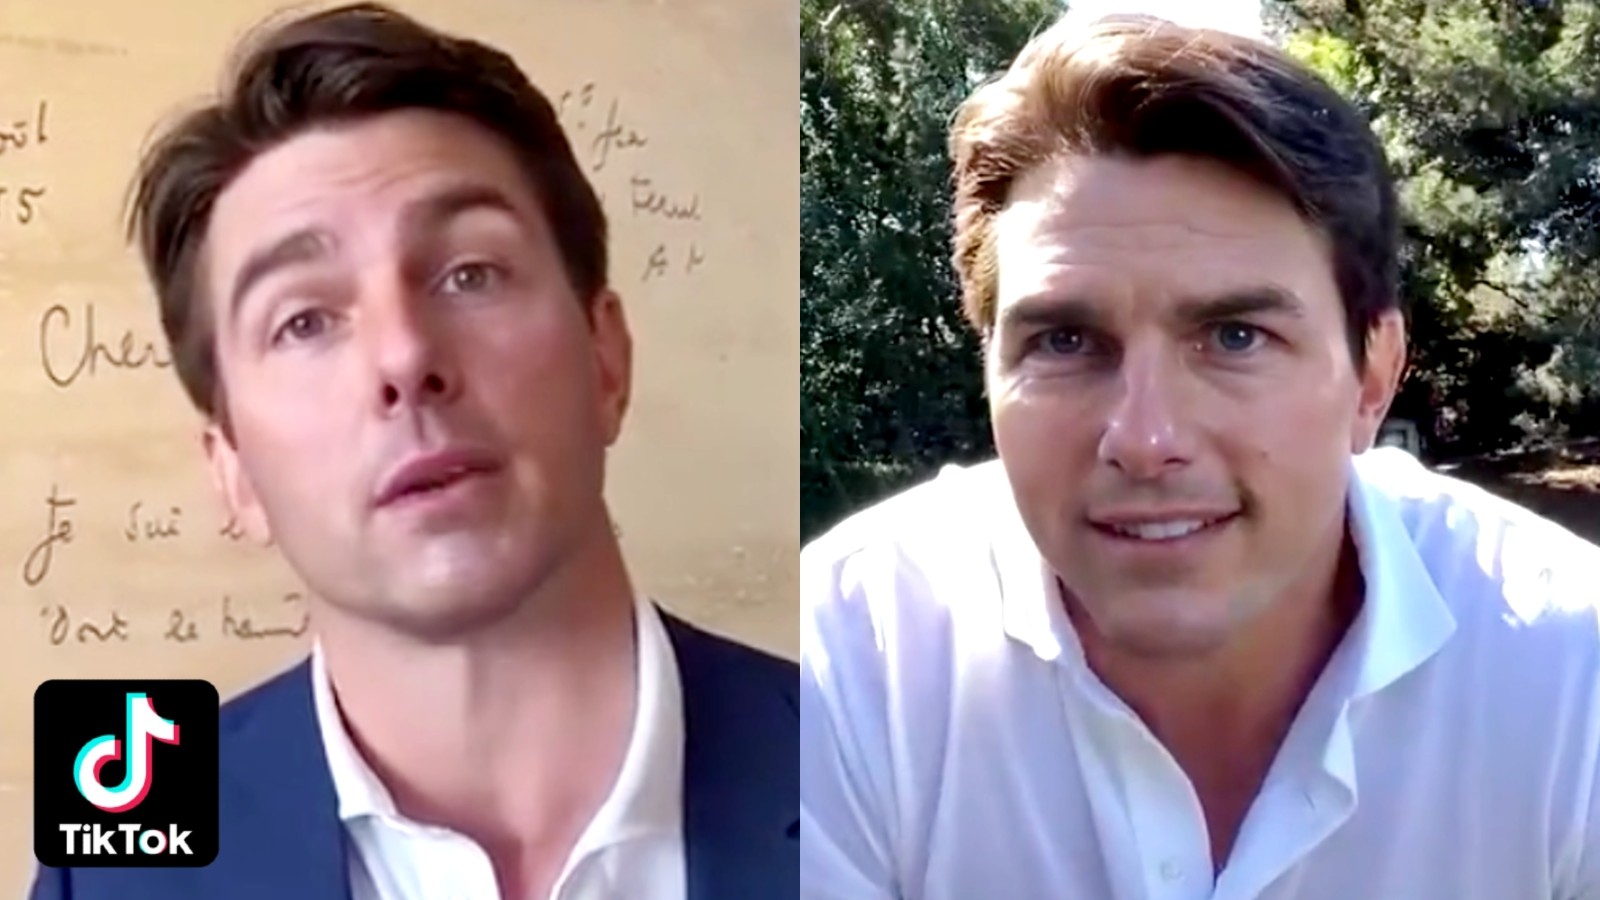 Viral Tom Cruise deepfake screenshots side by side